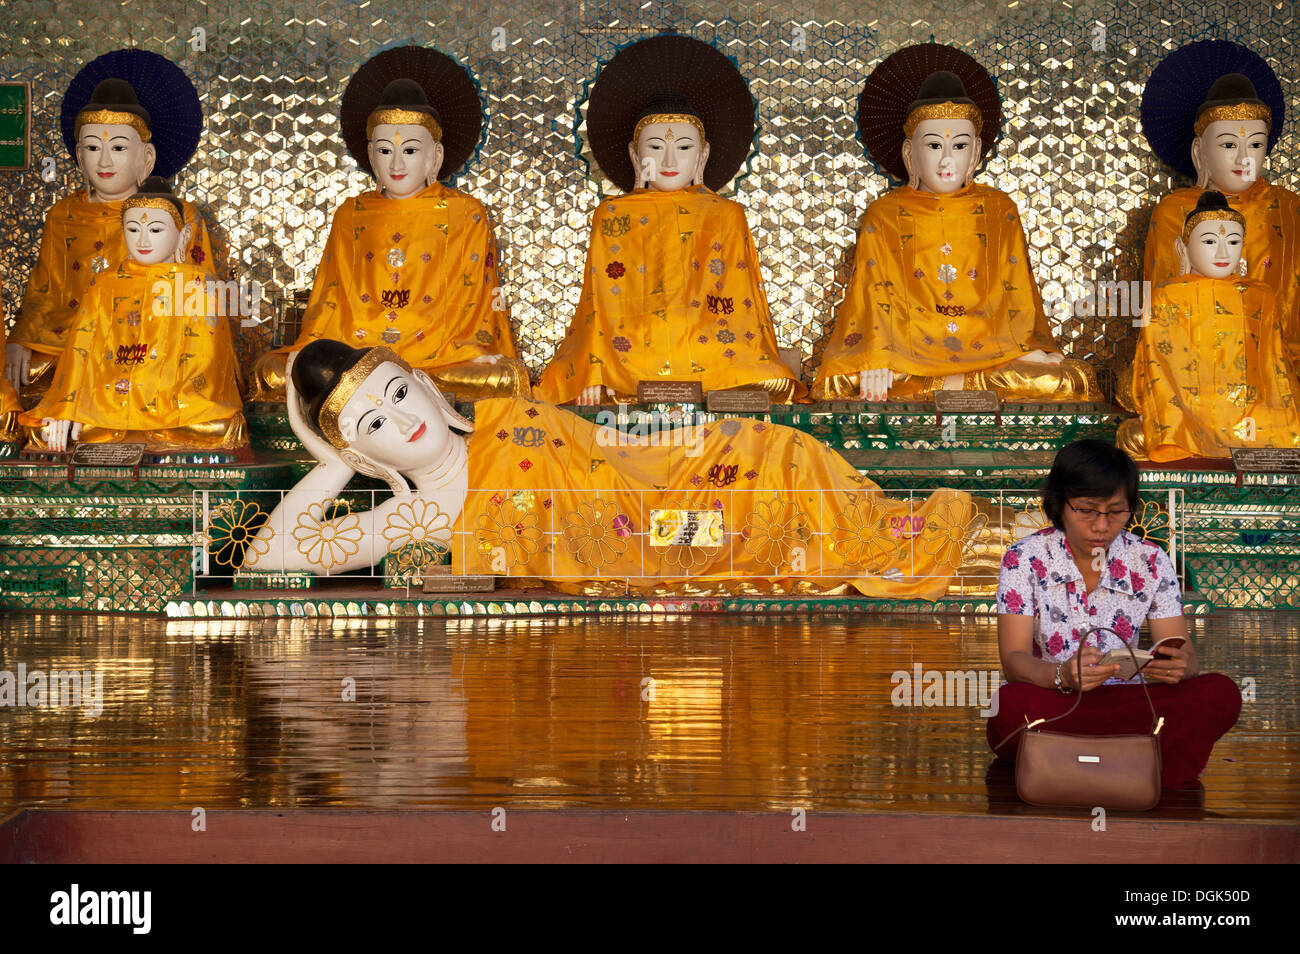 A woman reading sutras in front of an array of robed Buddhas at the Shwedagon Pagoda in Yangon in Myanmar. - Stock Image